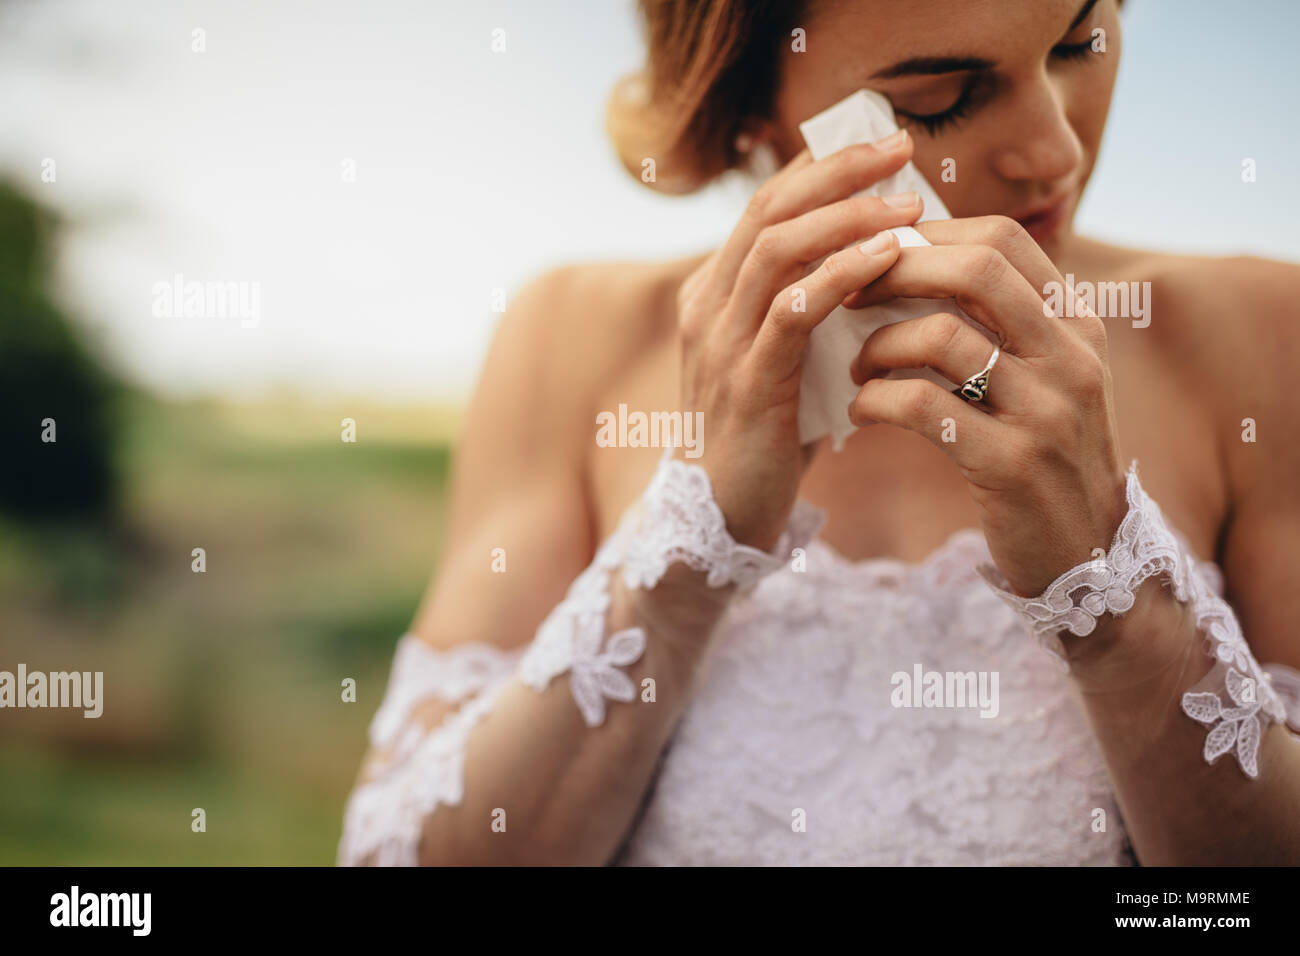 Beautiful bride in white dress weeps tears of happiness on the wedding day. Emotional woman in wedding gown wipes the tears with tissue paper. - Stock Image